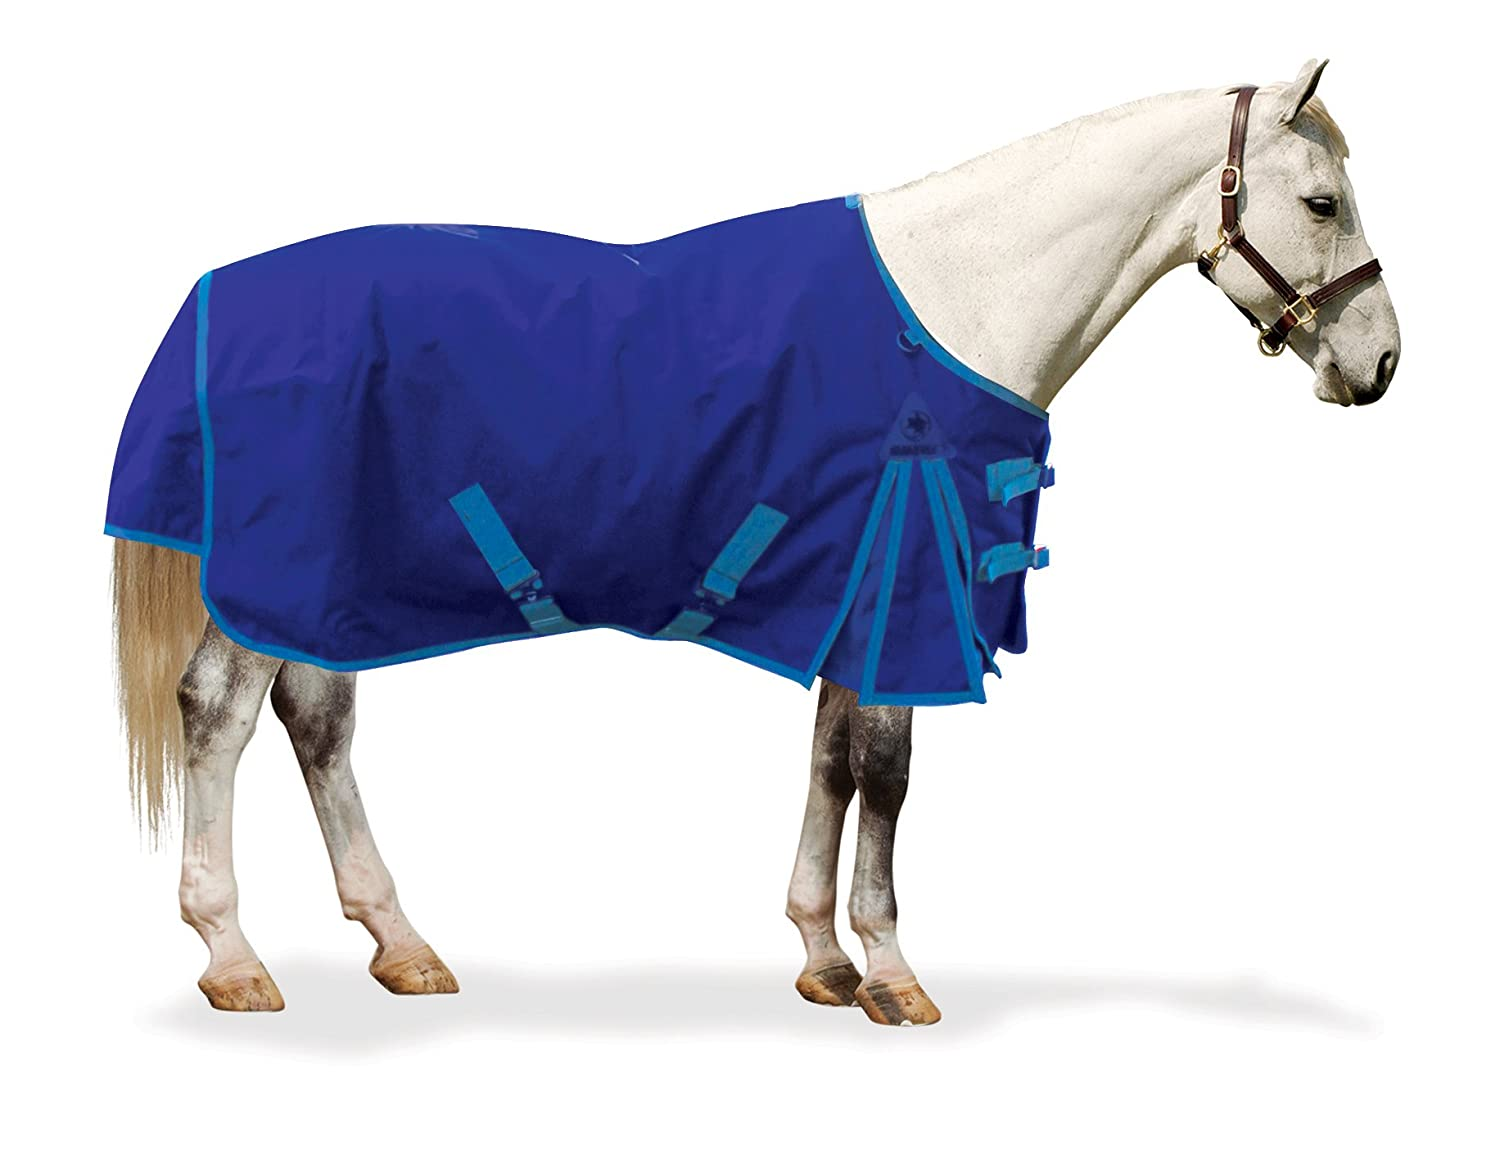 Centaur 1200D Pony T/O Blanket 200g ENGLISH RIDING SUPPLY